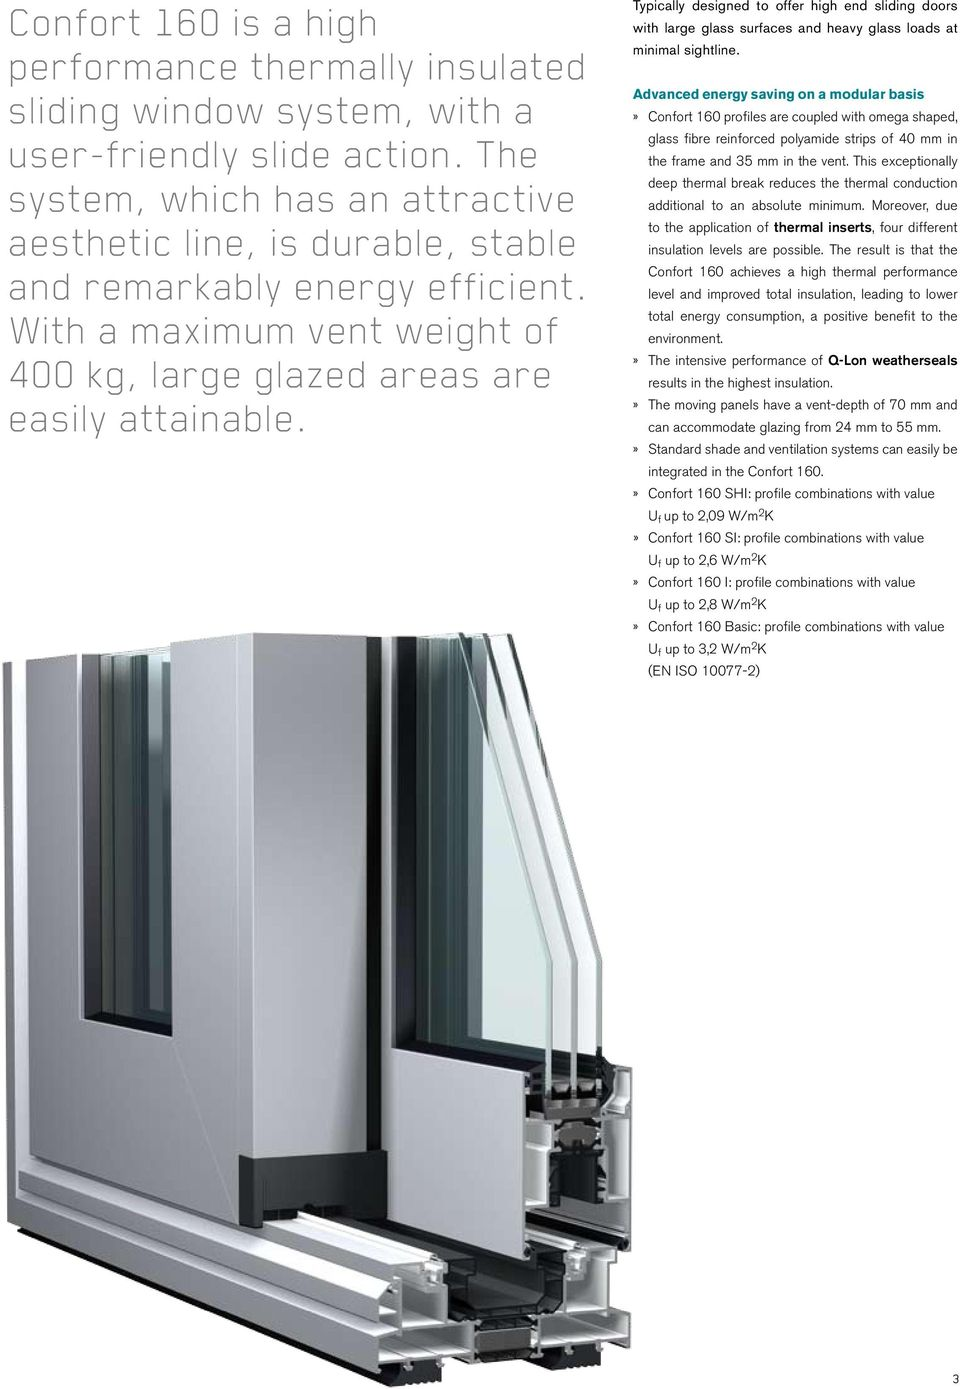 Typically designed to offer high end sliding doors with large glass surfaces and heavy glass loads at minimal sightline.